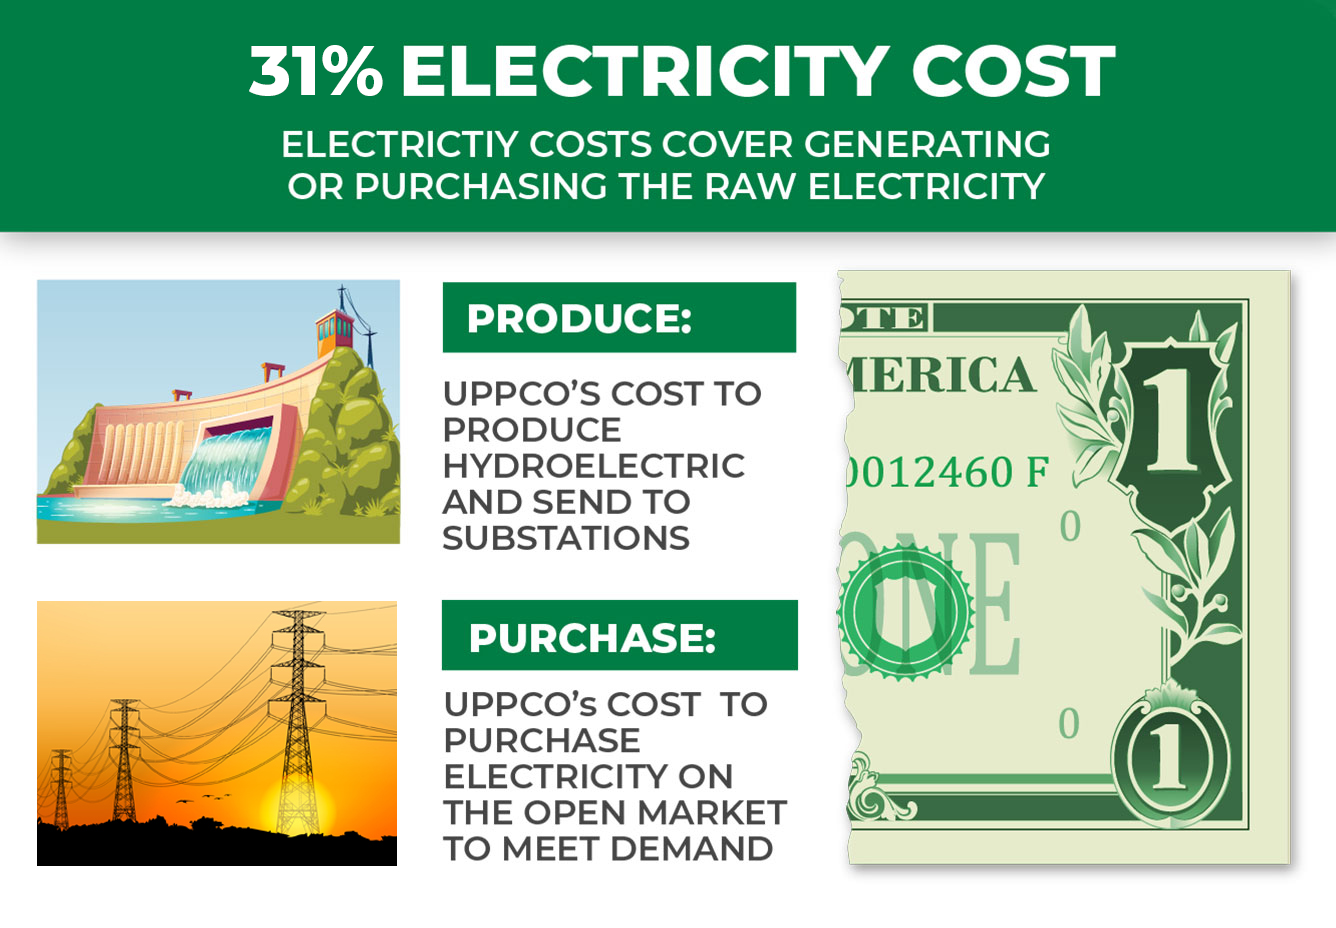 30-percent-electricity-cost-infographic-high-qual